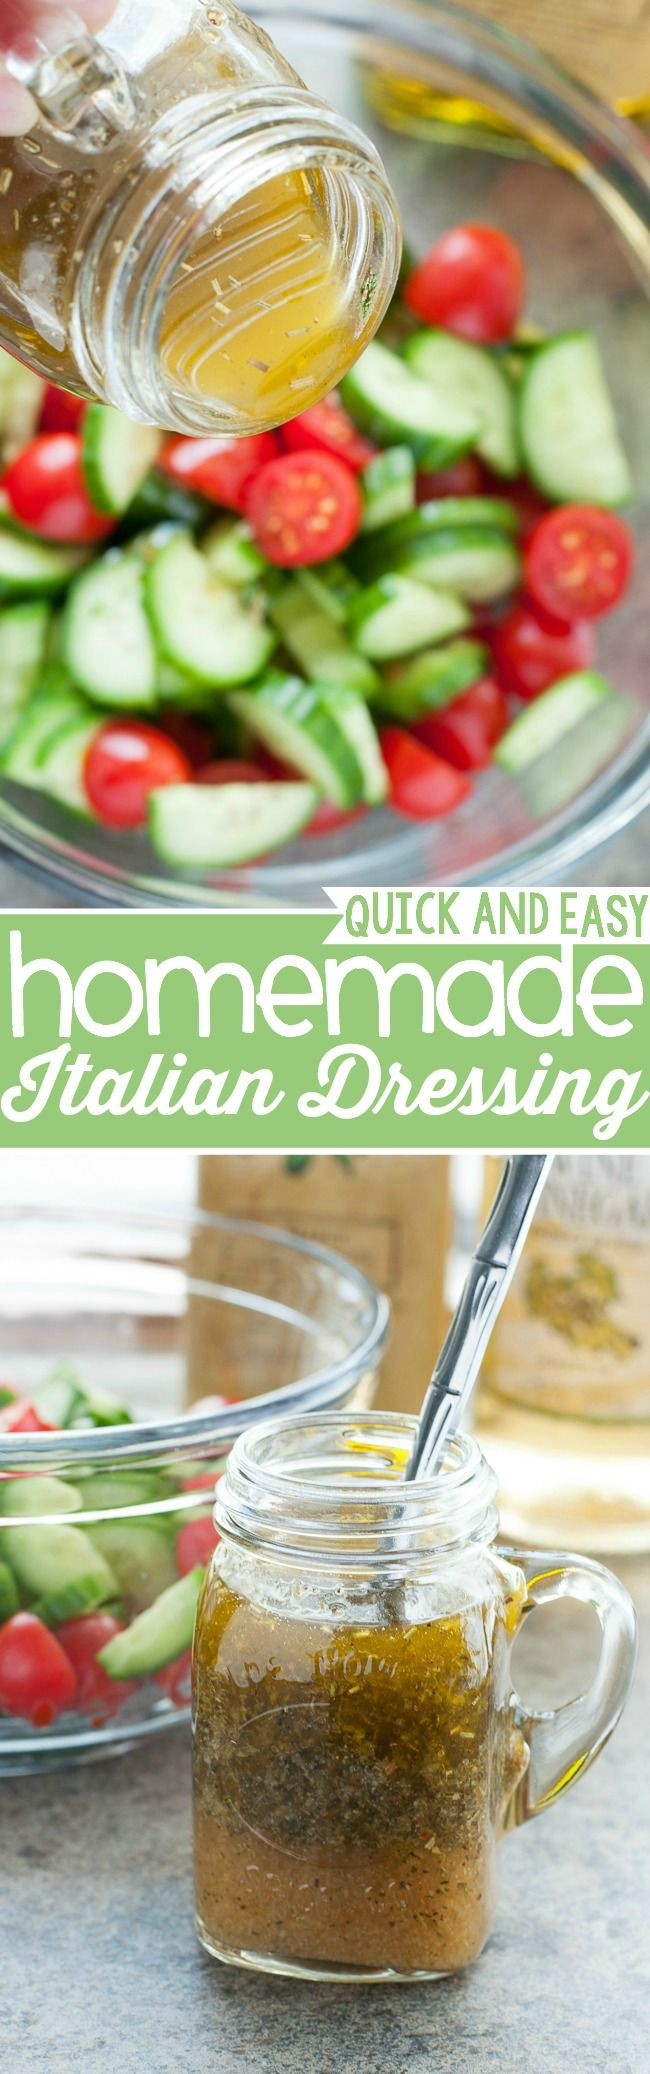 Sugarless salad dressing recipes